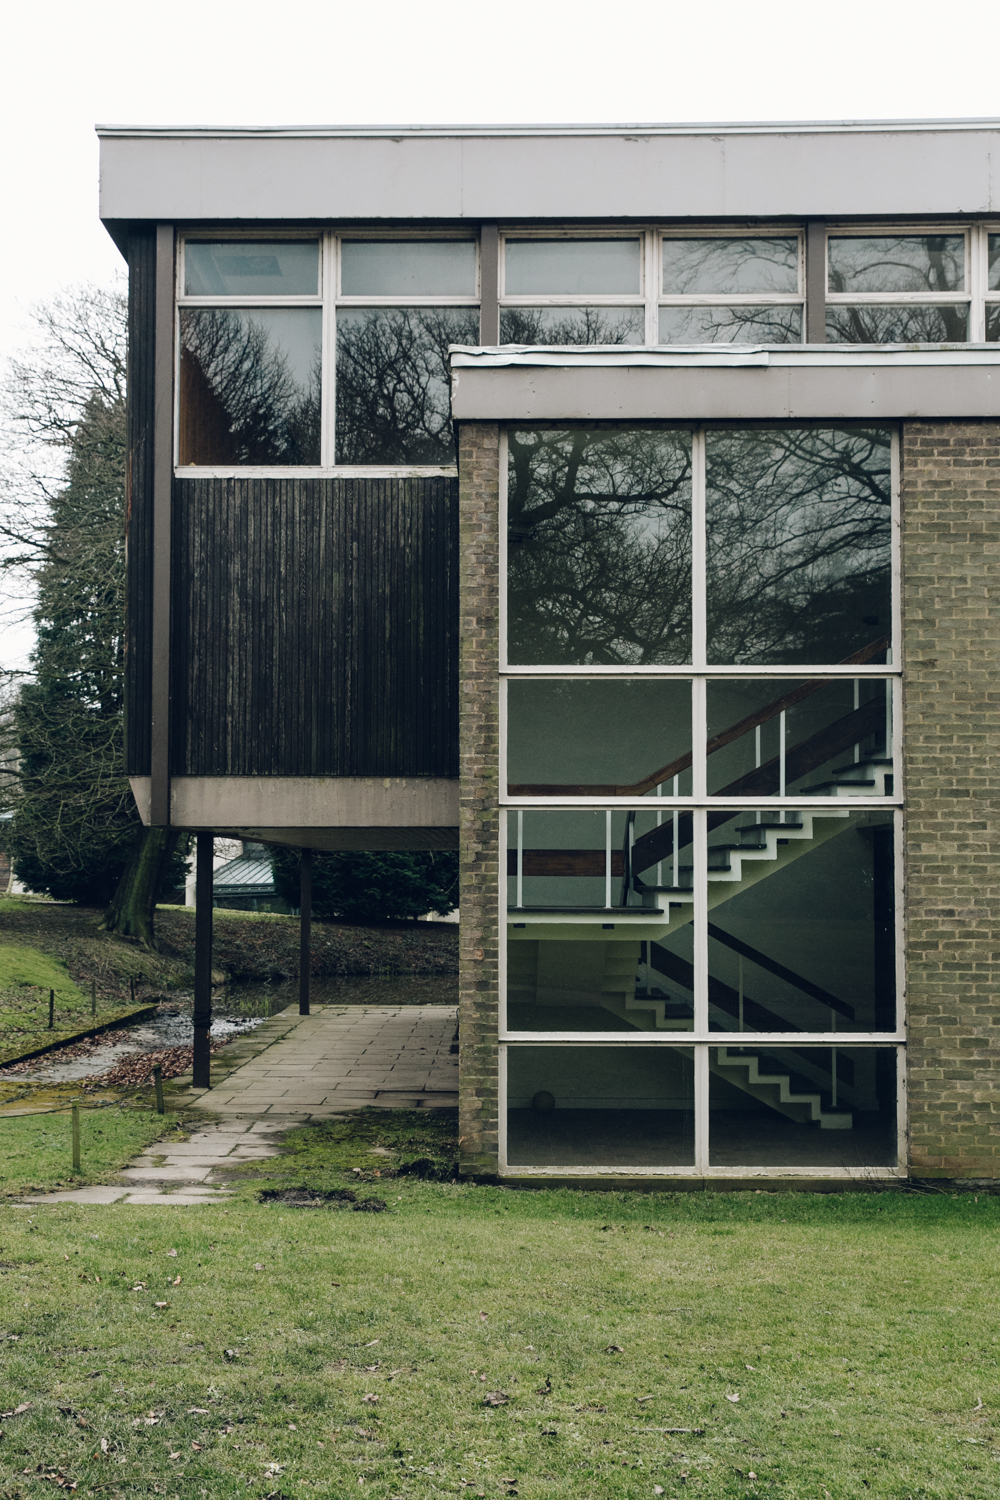 Haarkon Bretton Hall Campus School College Architecture Modernist Building Wood Yorkshire Sculpture Park Staircase